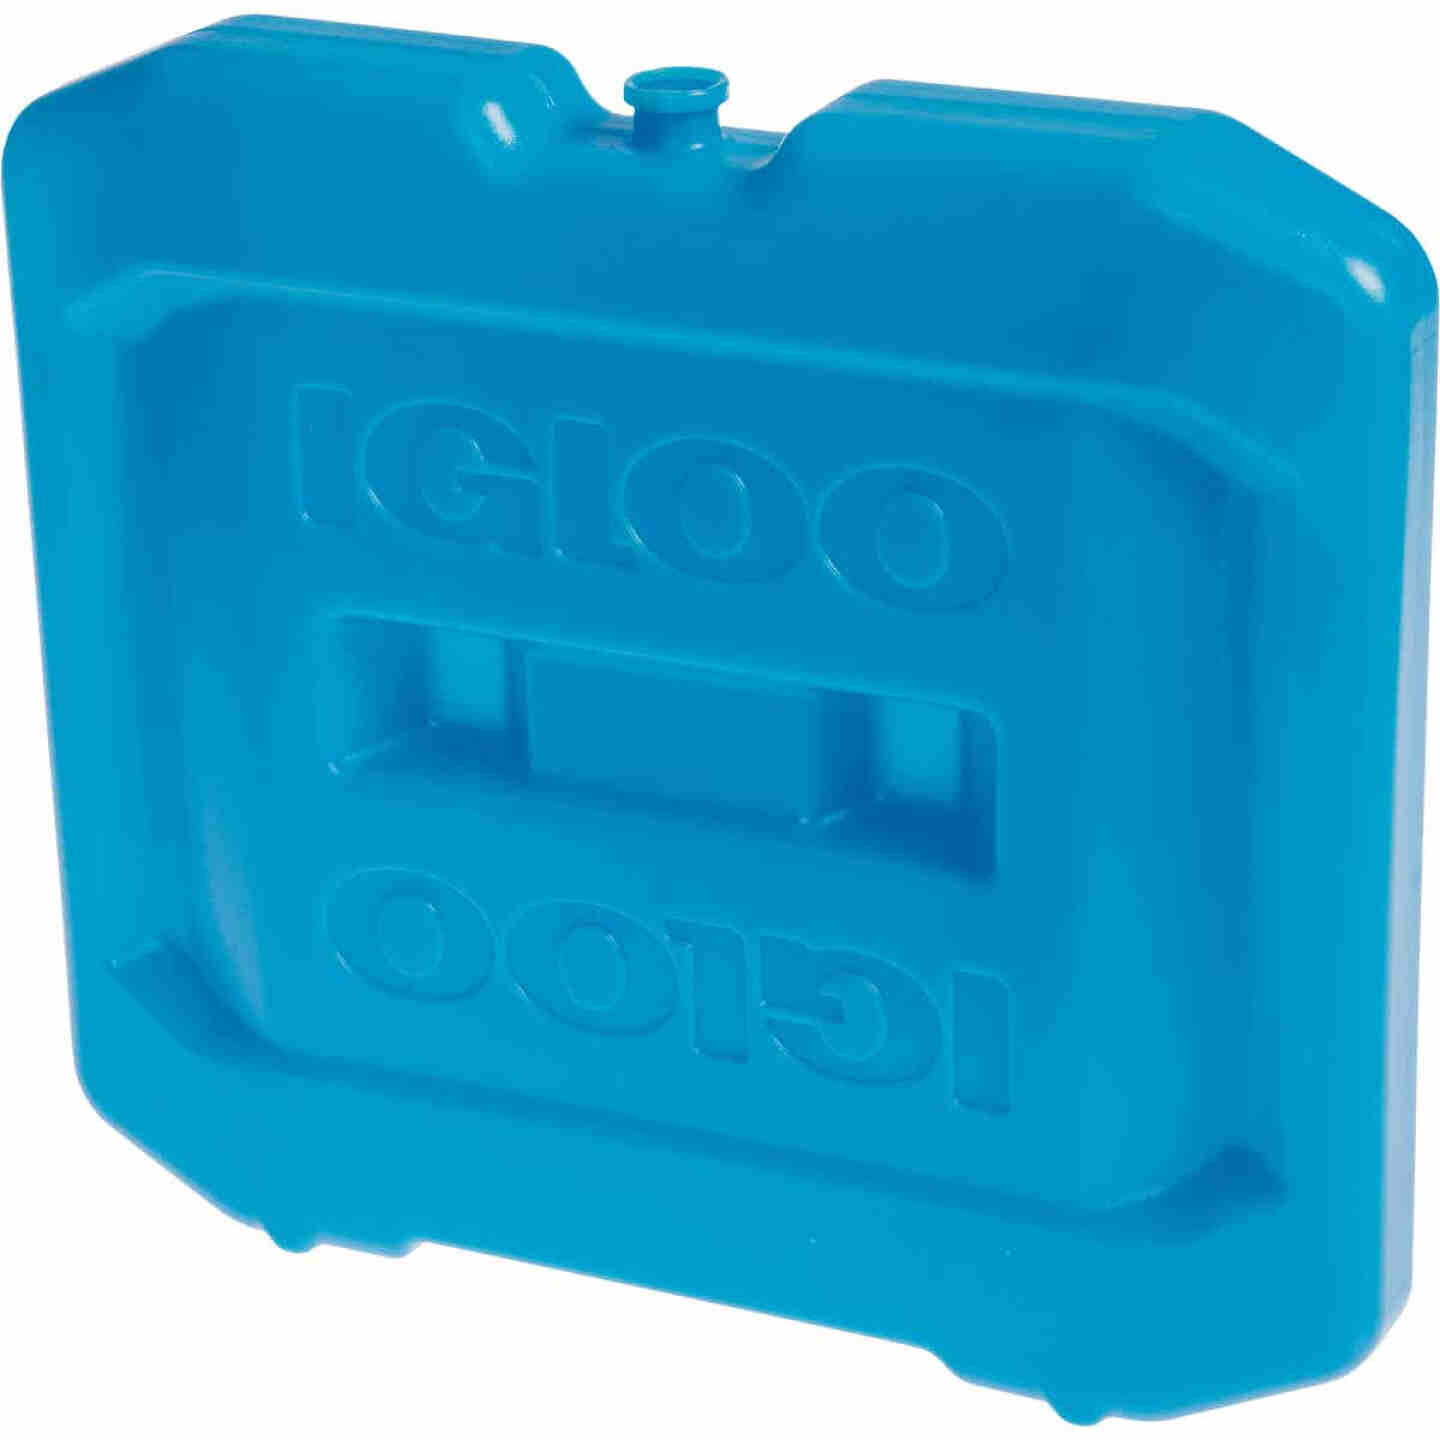 Igloo Maxcold 5 Lb. Extra Large Cooler Ice Pack Image 2